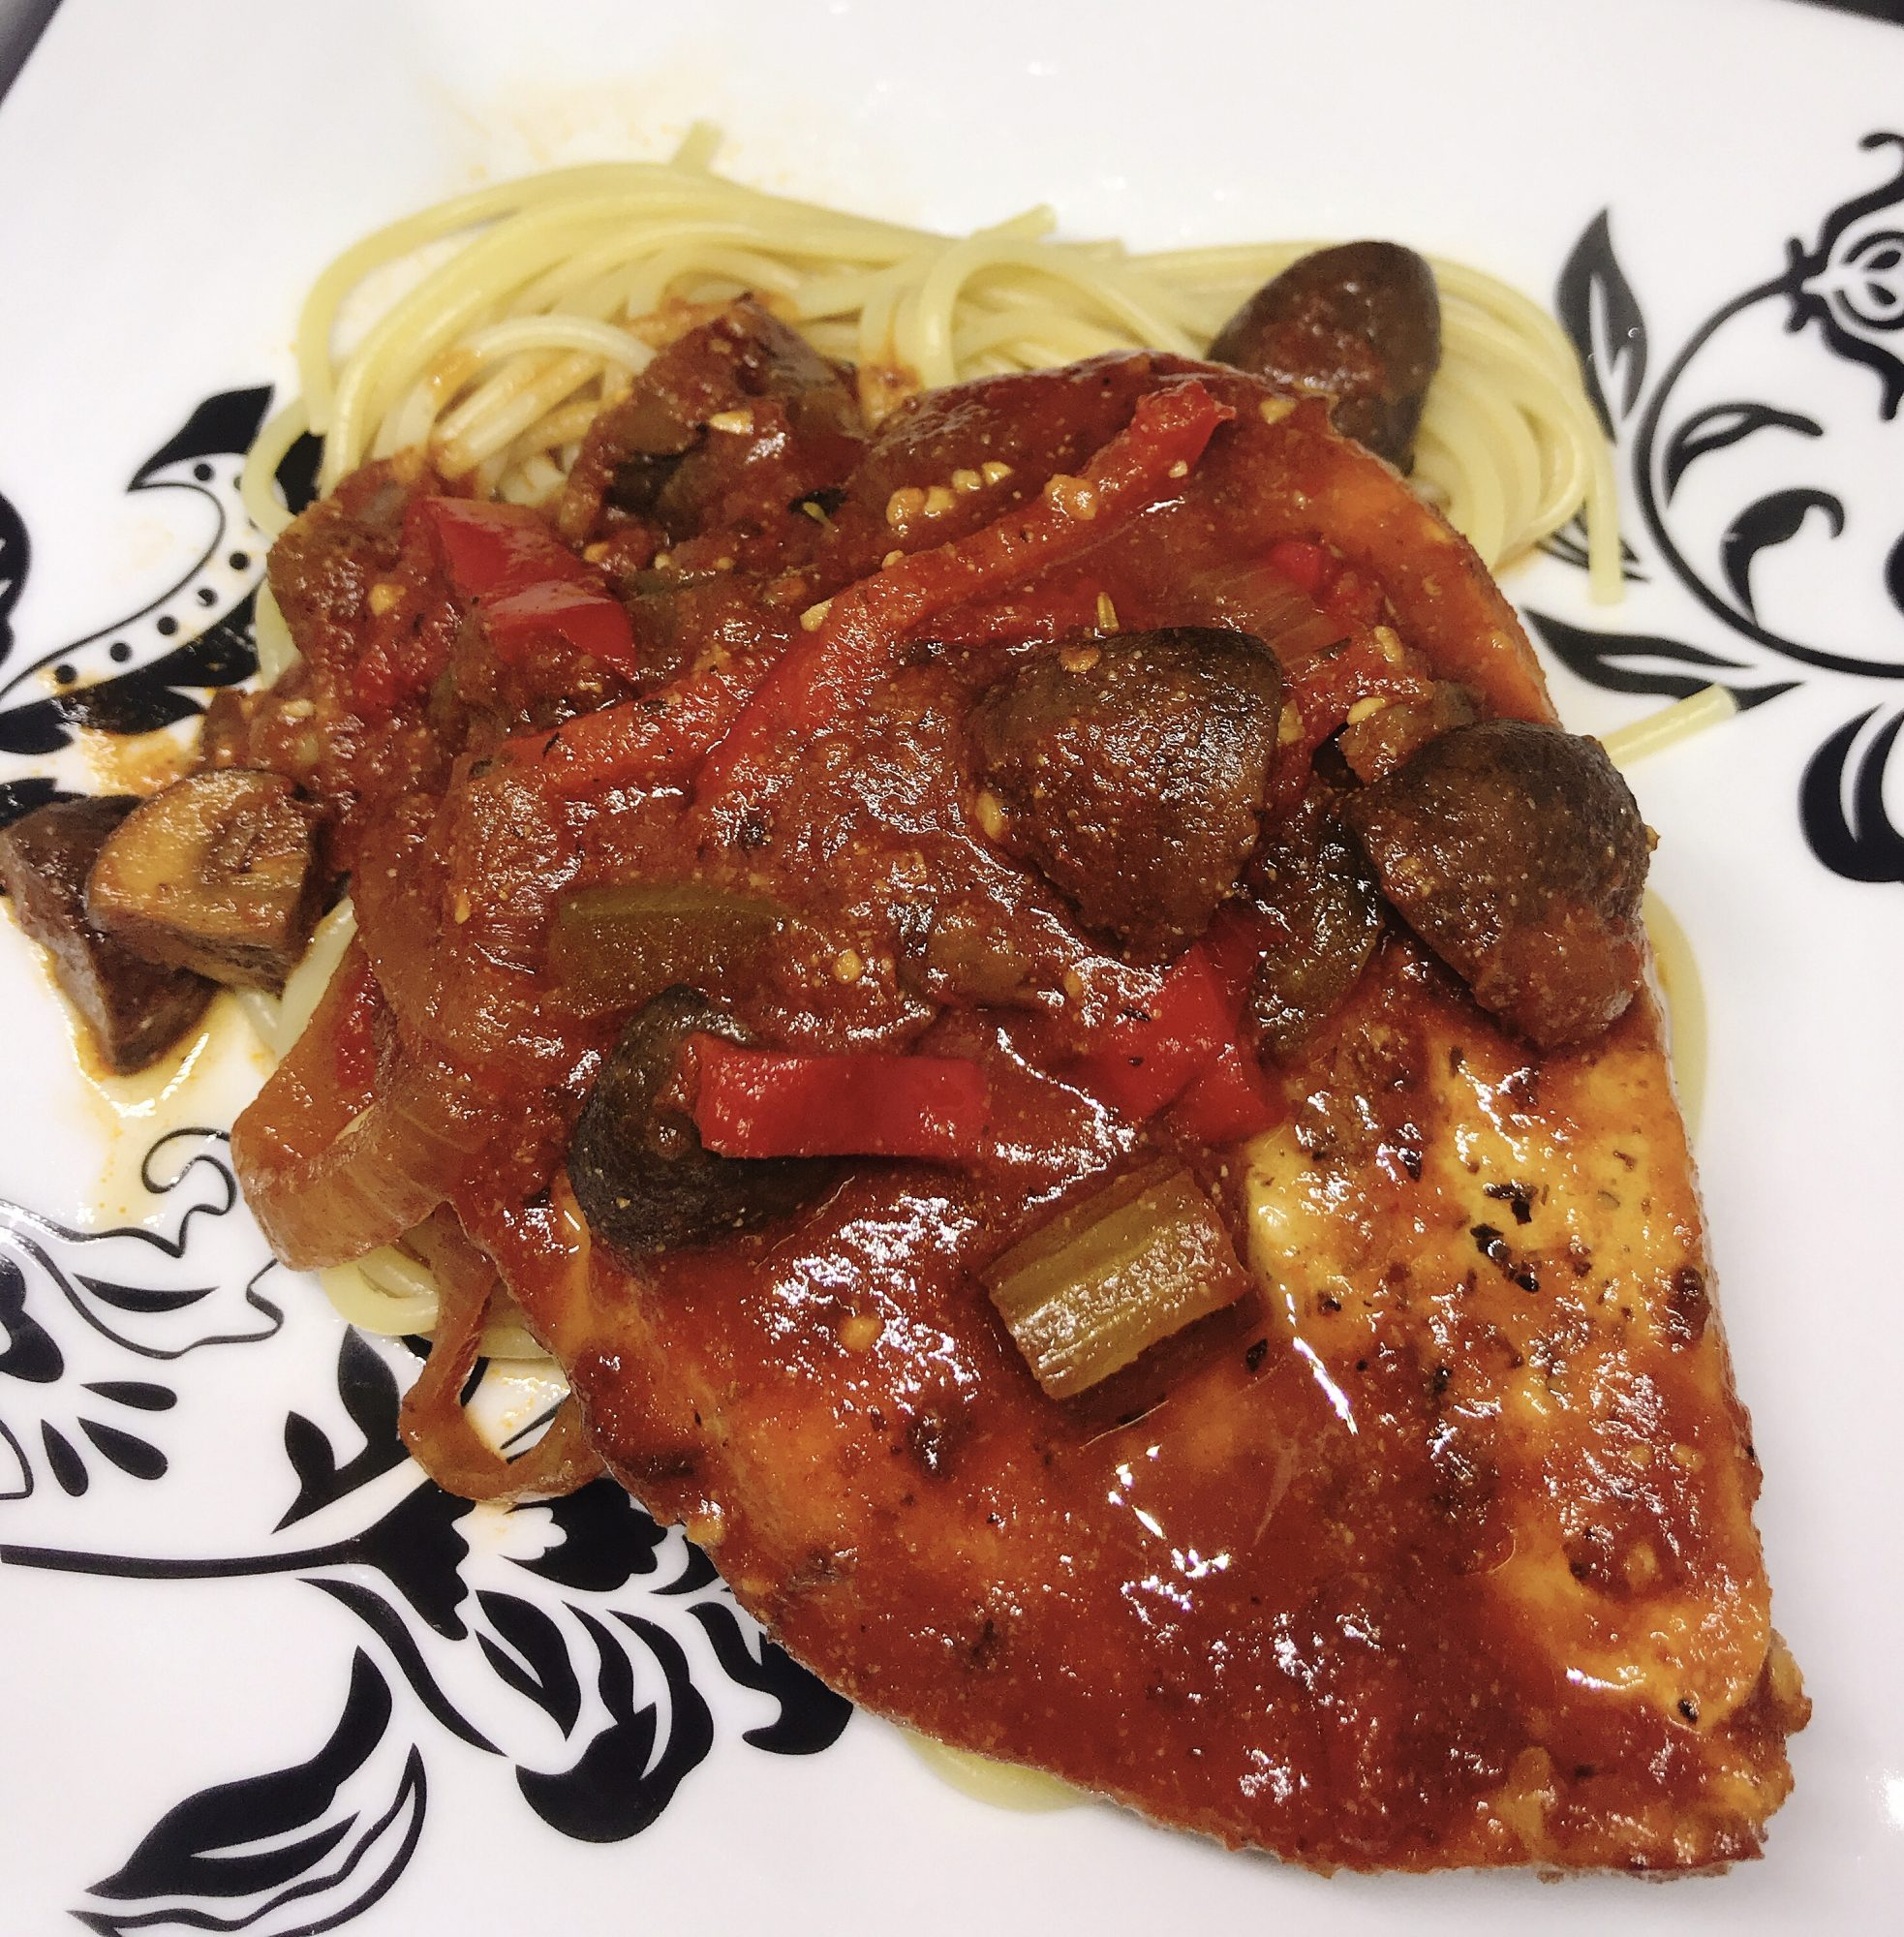 chicken thigh with red sauce over spaghetti